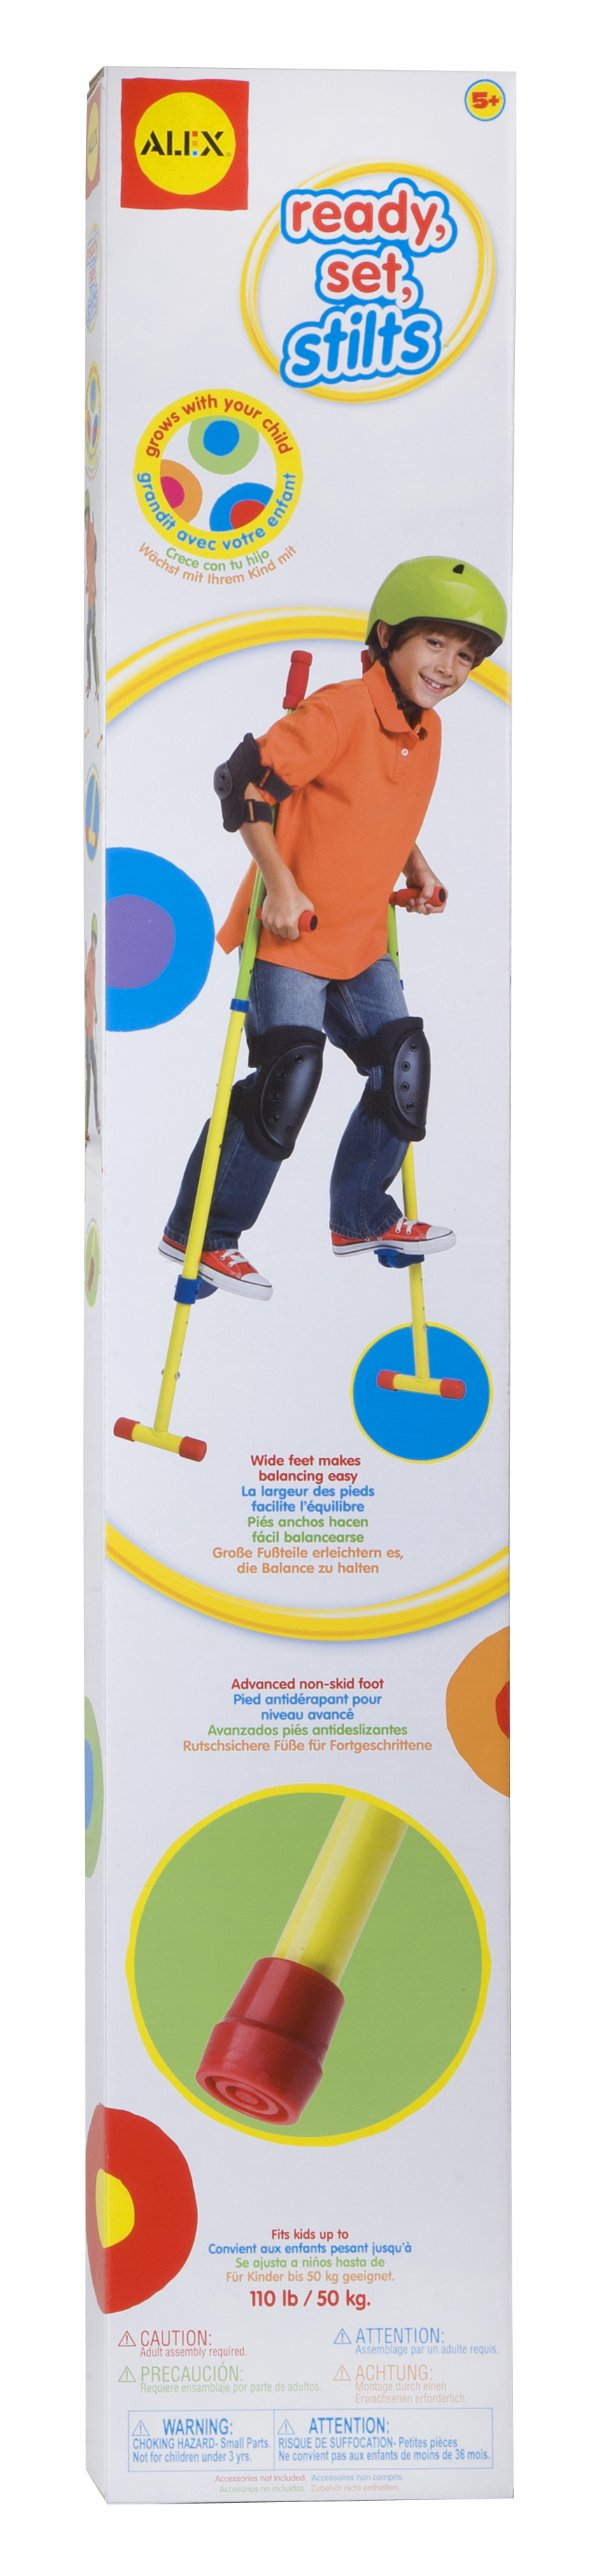 ALEX Toys Active Ready Stilts